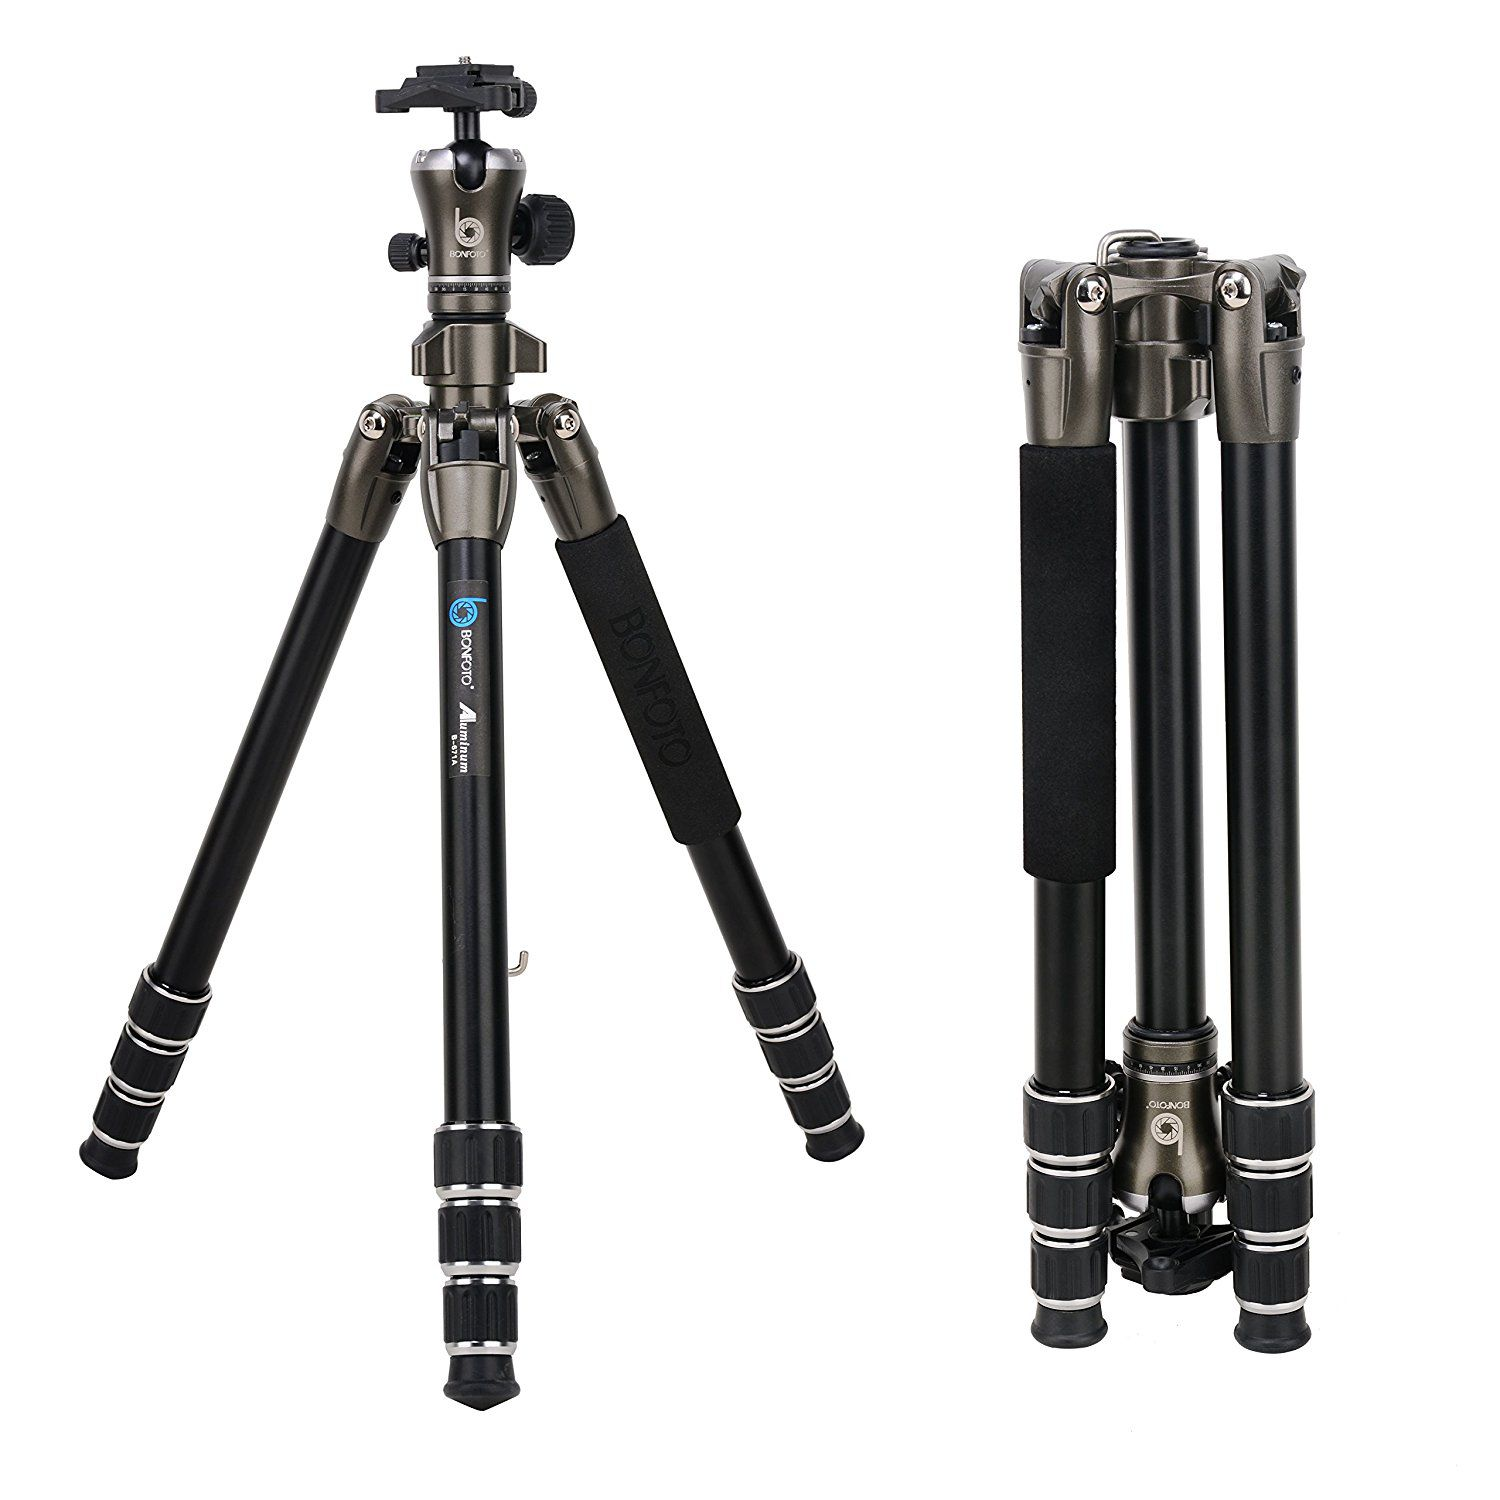 The 8 Best Tripods to Buy in 2017 for DSLR Cameras